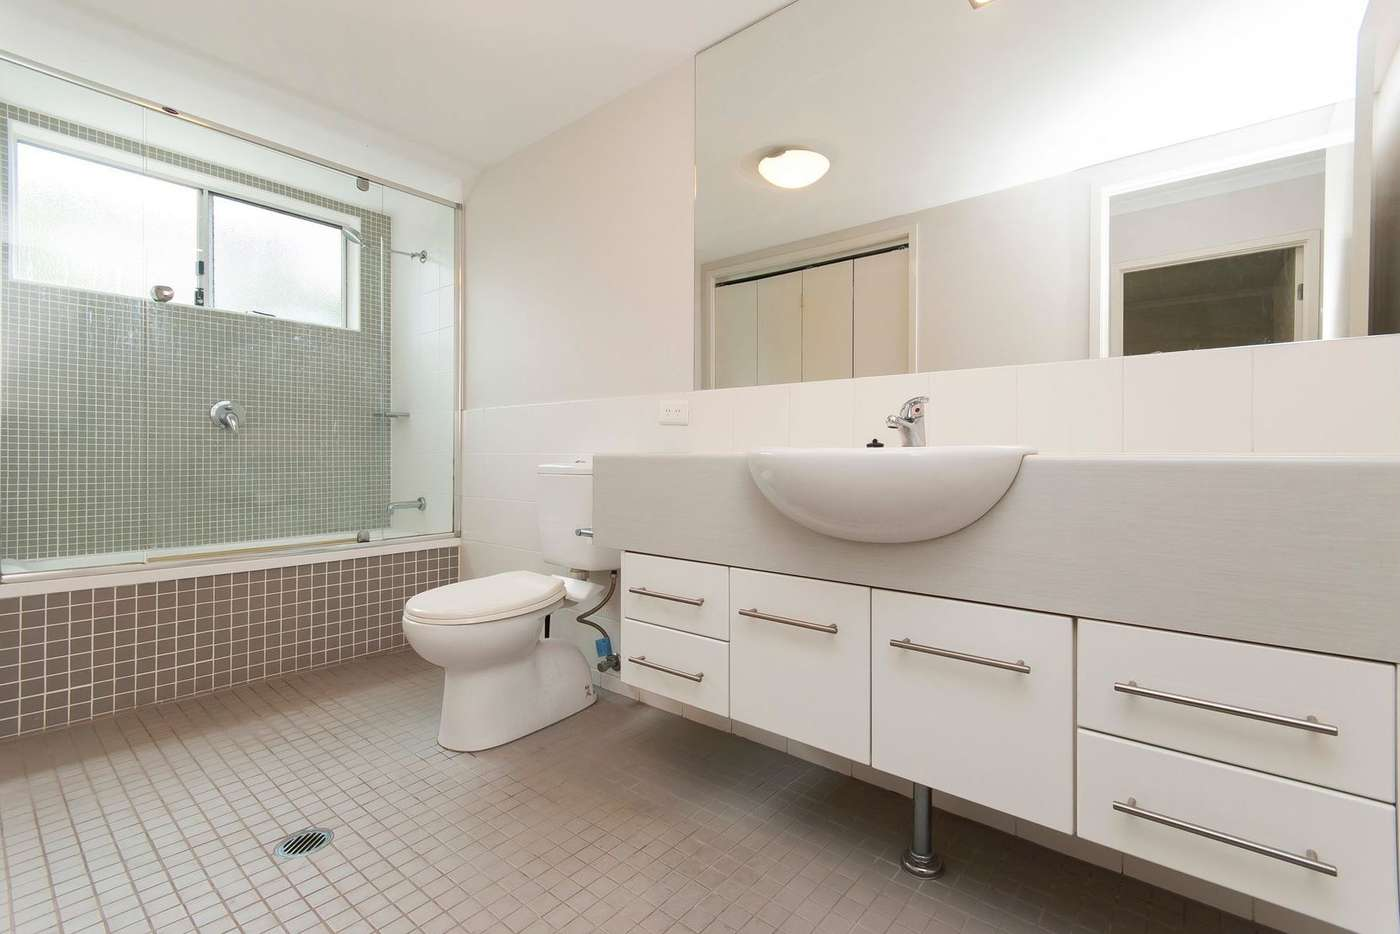 Fifth view of Homely apartment listing, 69/2 Campbell Street, Toowong QLD 4066